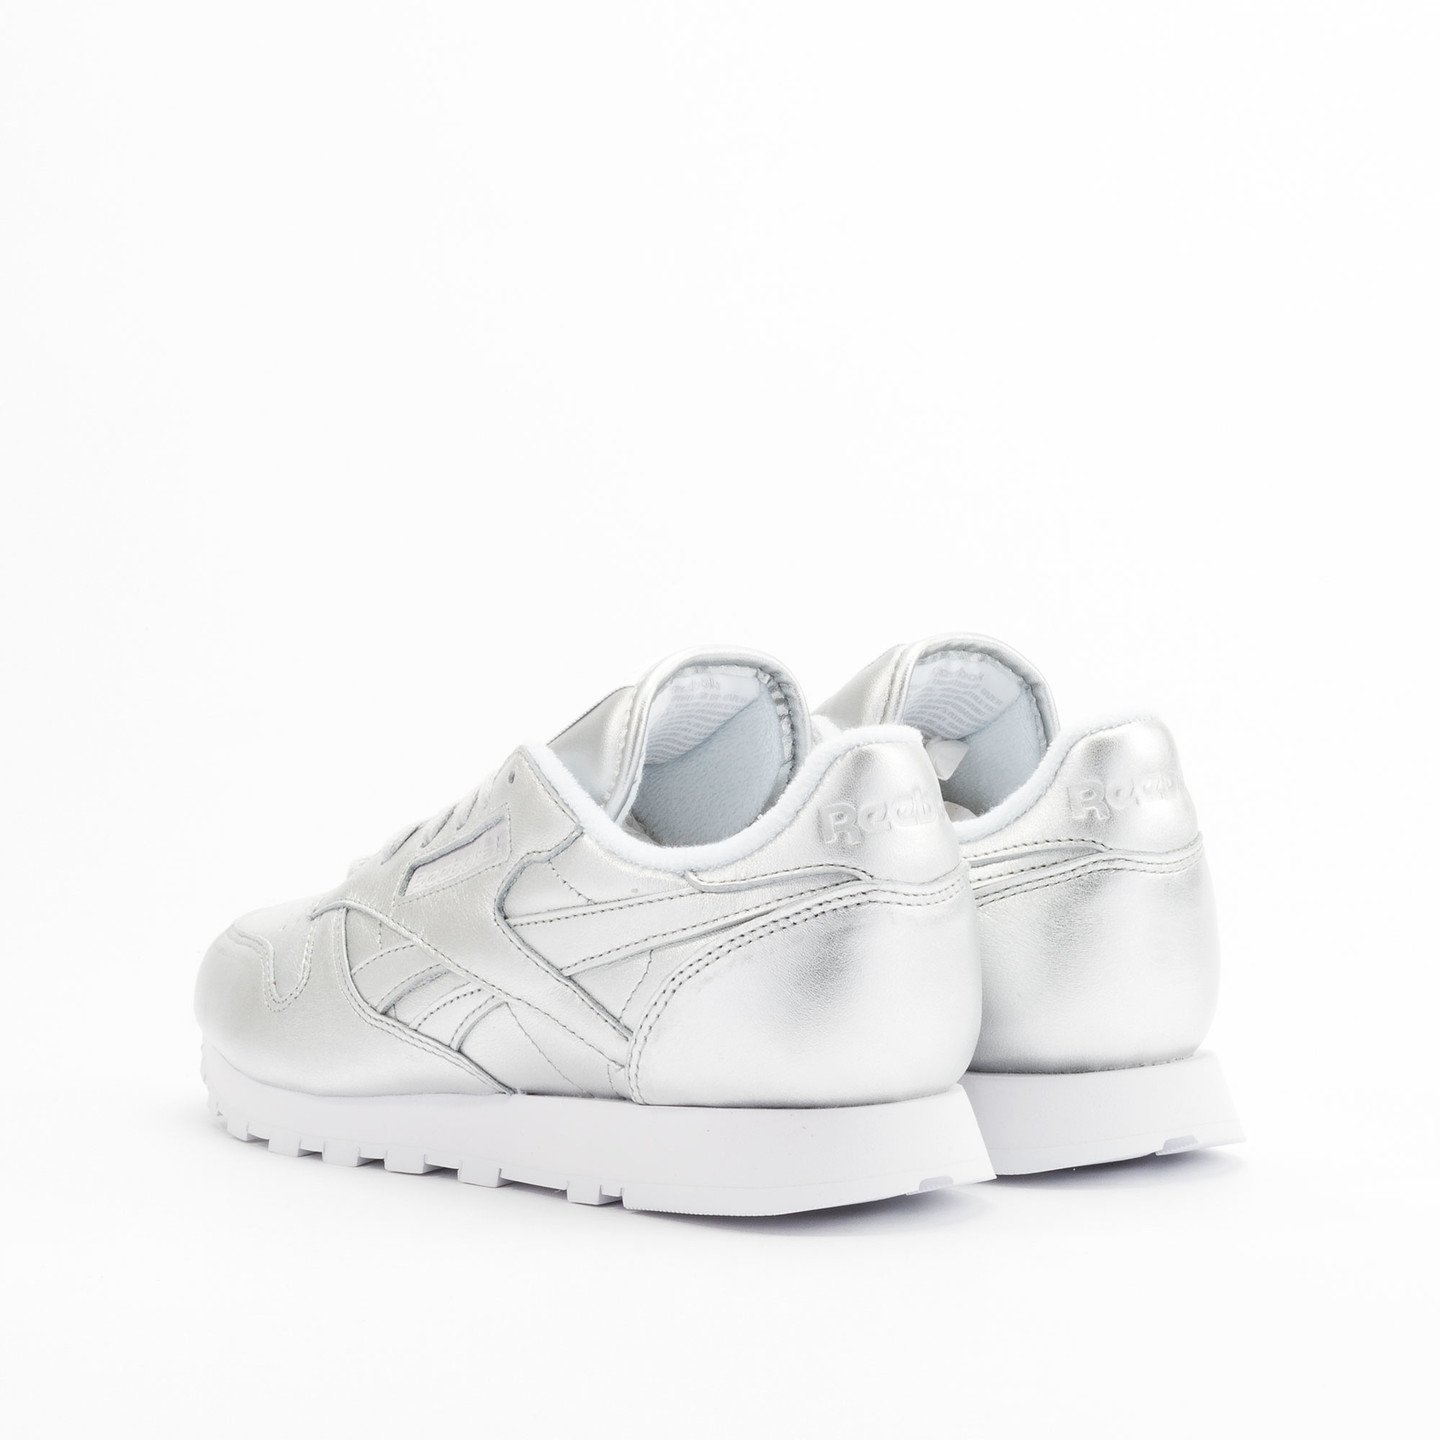 Reebok Classic Leather Spirit Presence Silver / White V62700-37.5